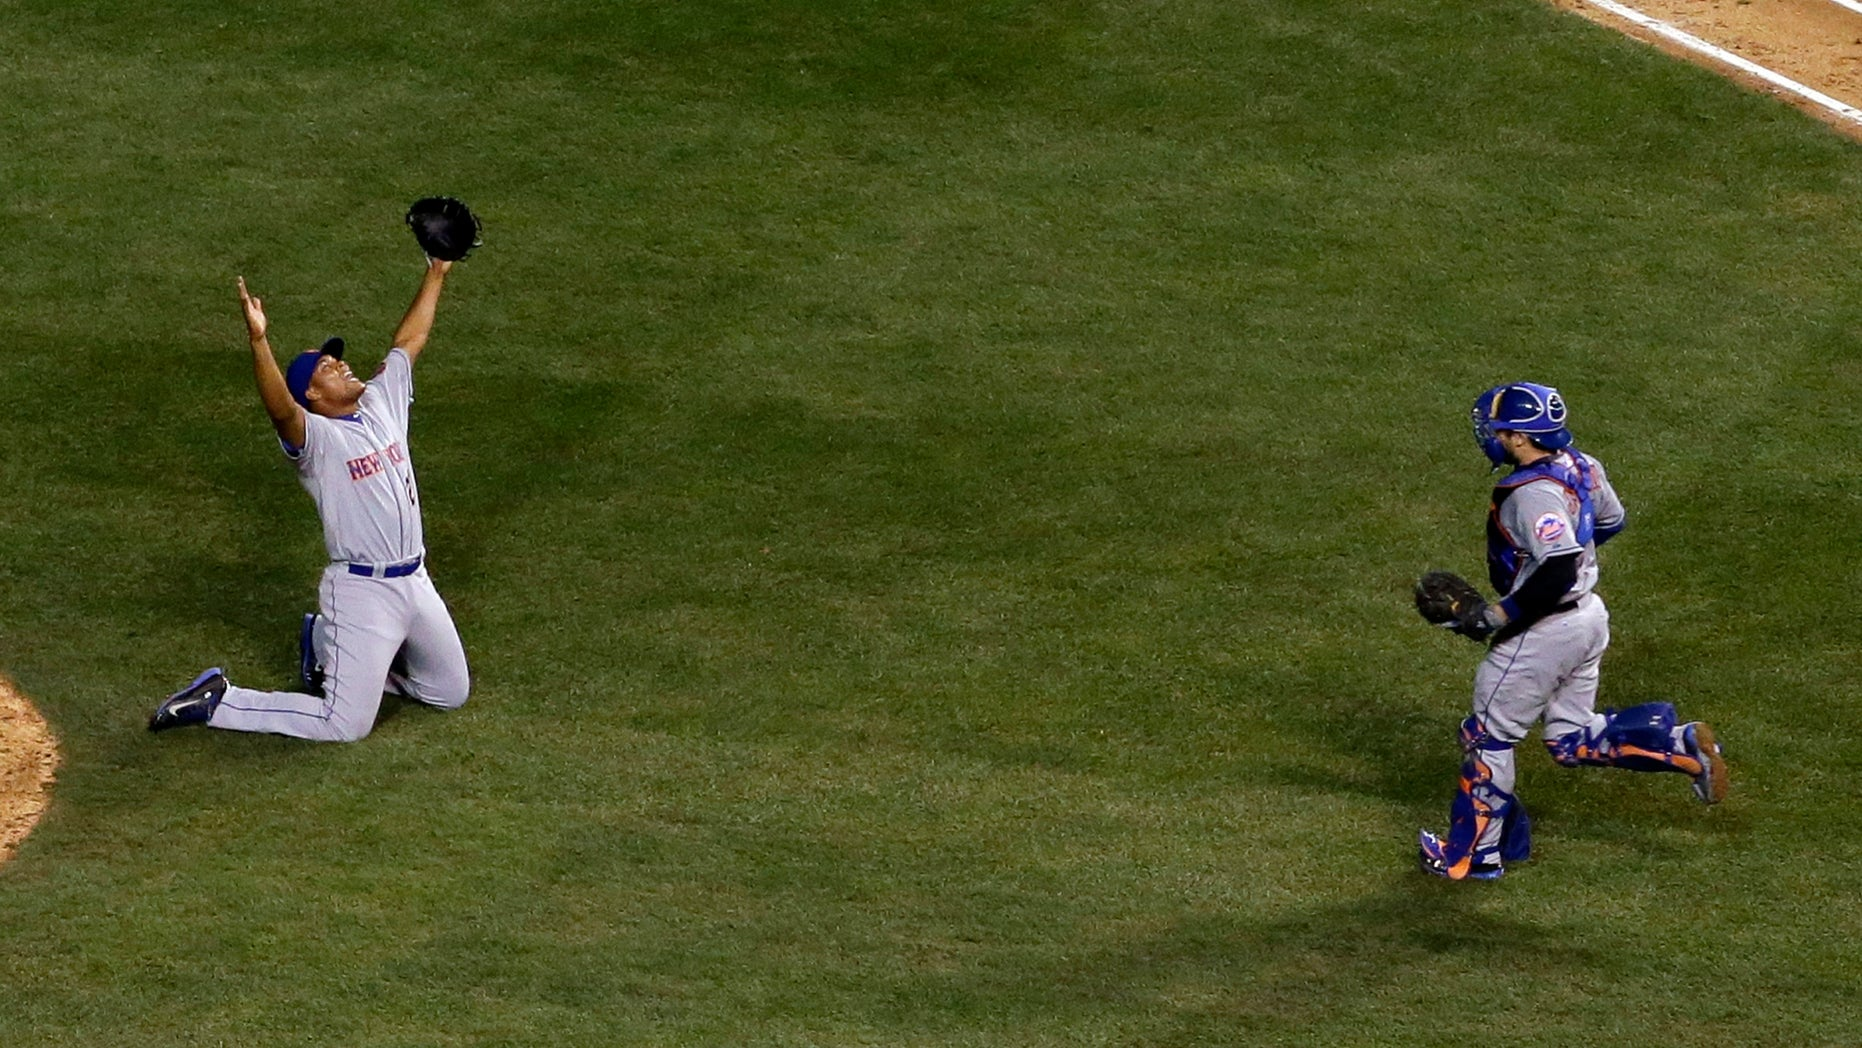 New York Mets pitcher Jeurys Familia, left, and catcher Travis d'Arnaud celebrates after Game 4 of the National League baseball championship series Wednesday, Oct. 21, 2015, in Chicago. The Mets won 8-3 to advance to the World Series. (AP Photo/David J. Phillip)